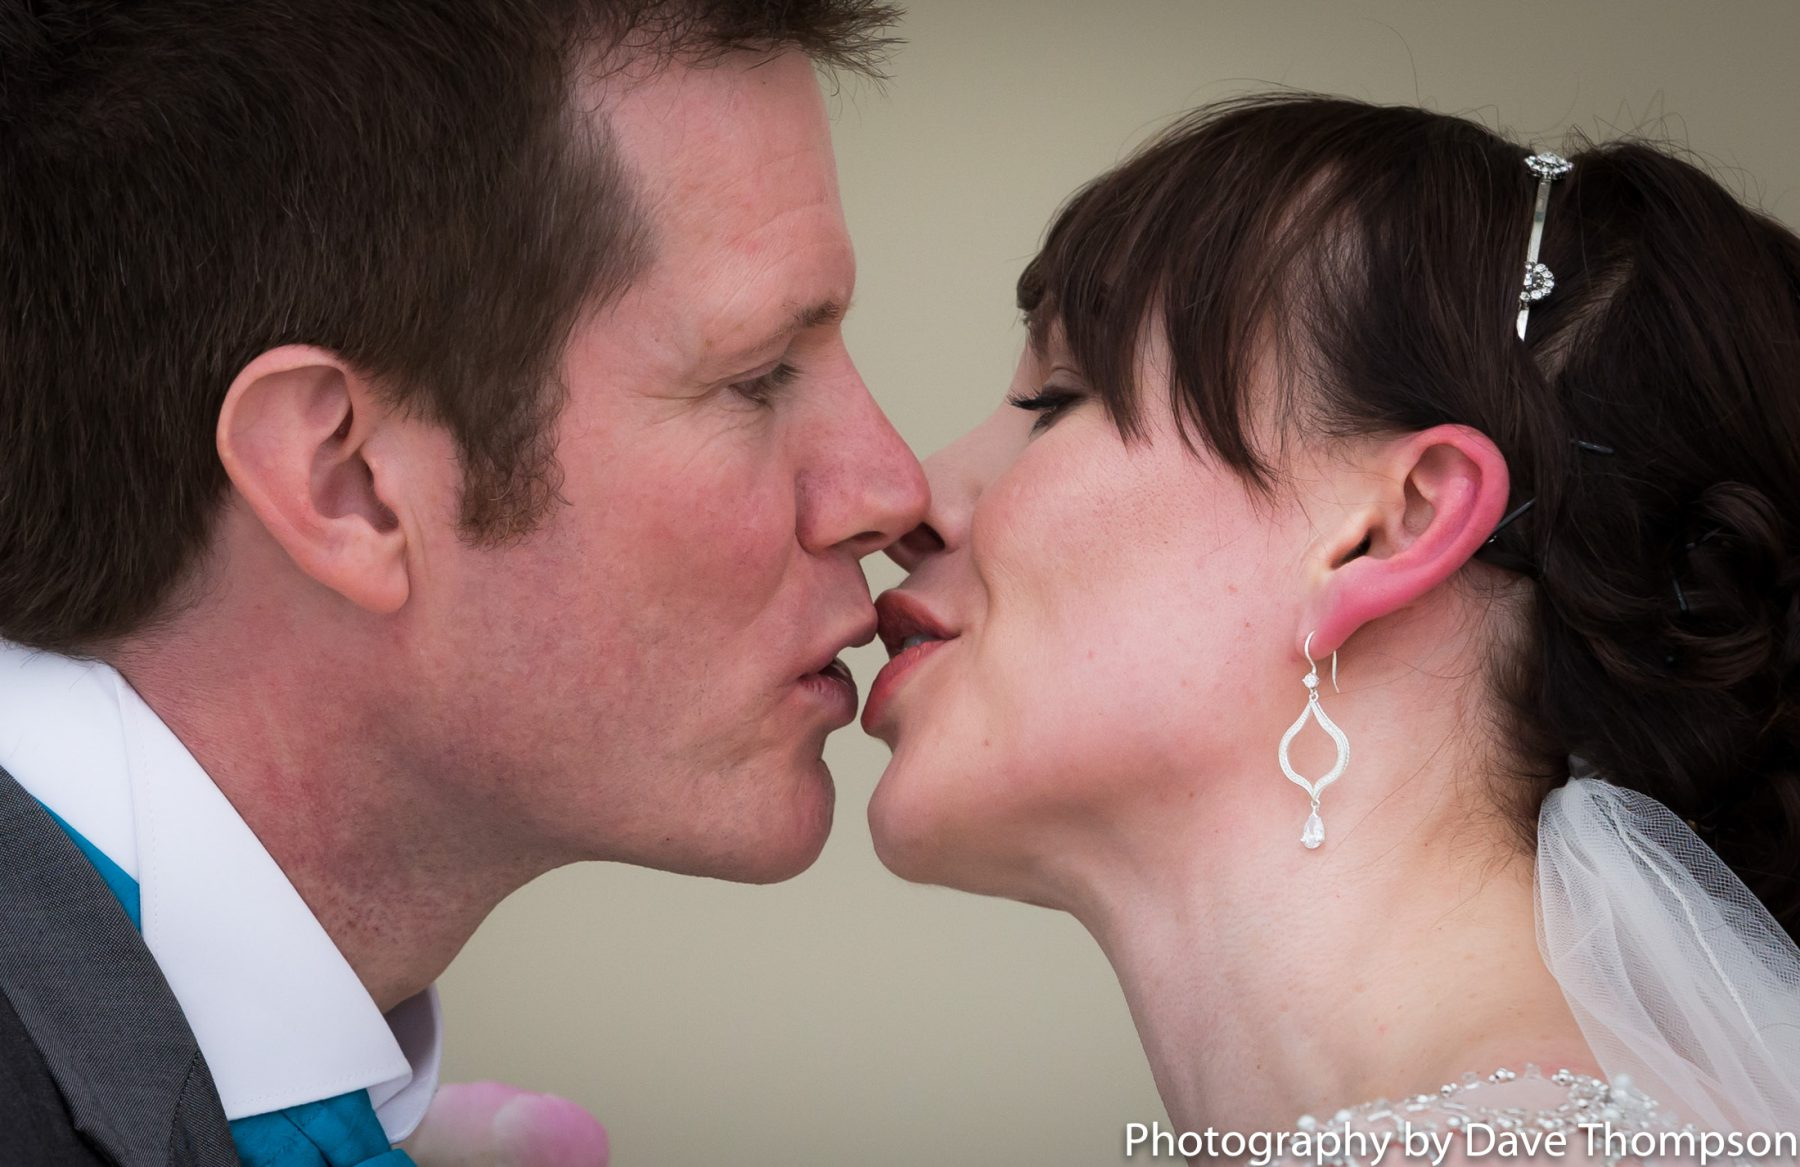 First kiss for the bride and groom